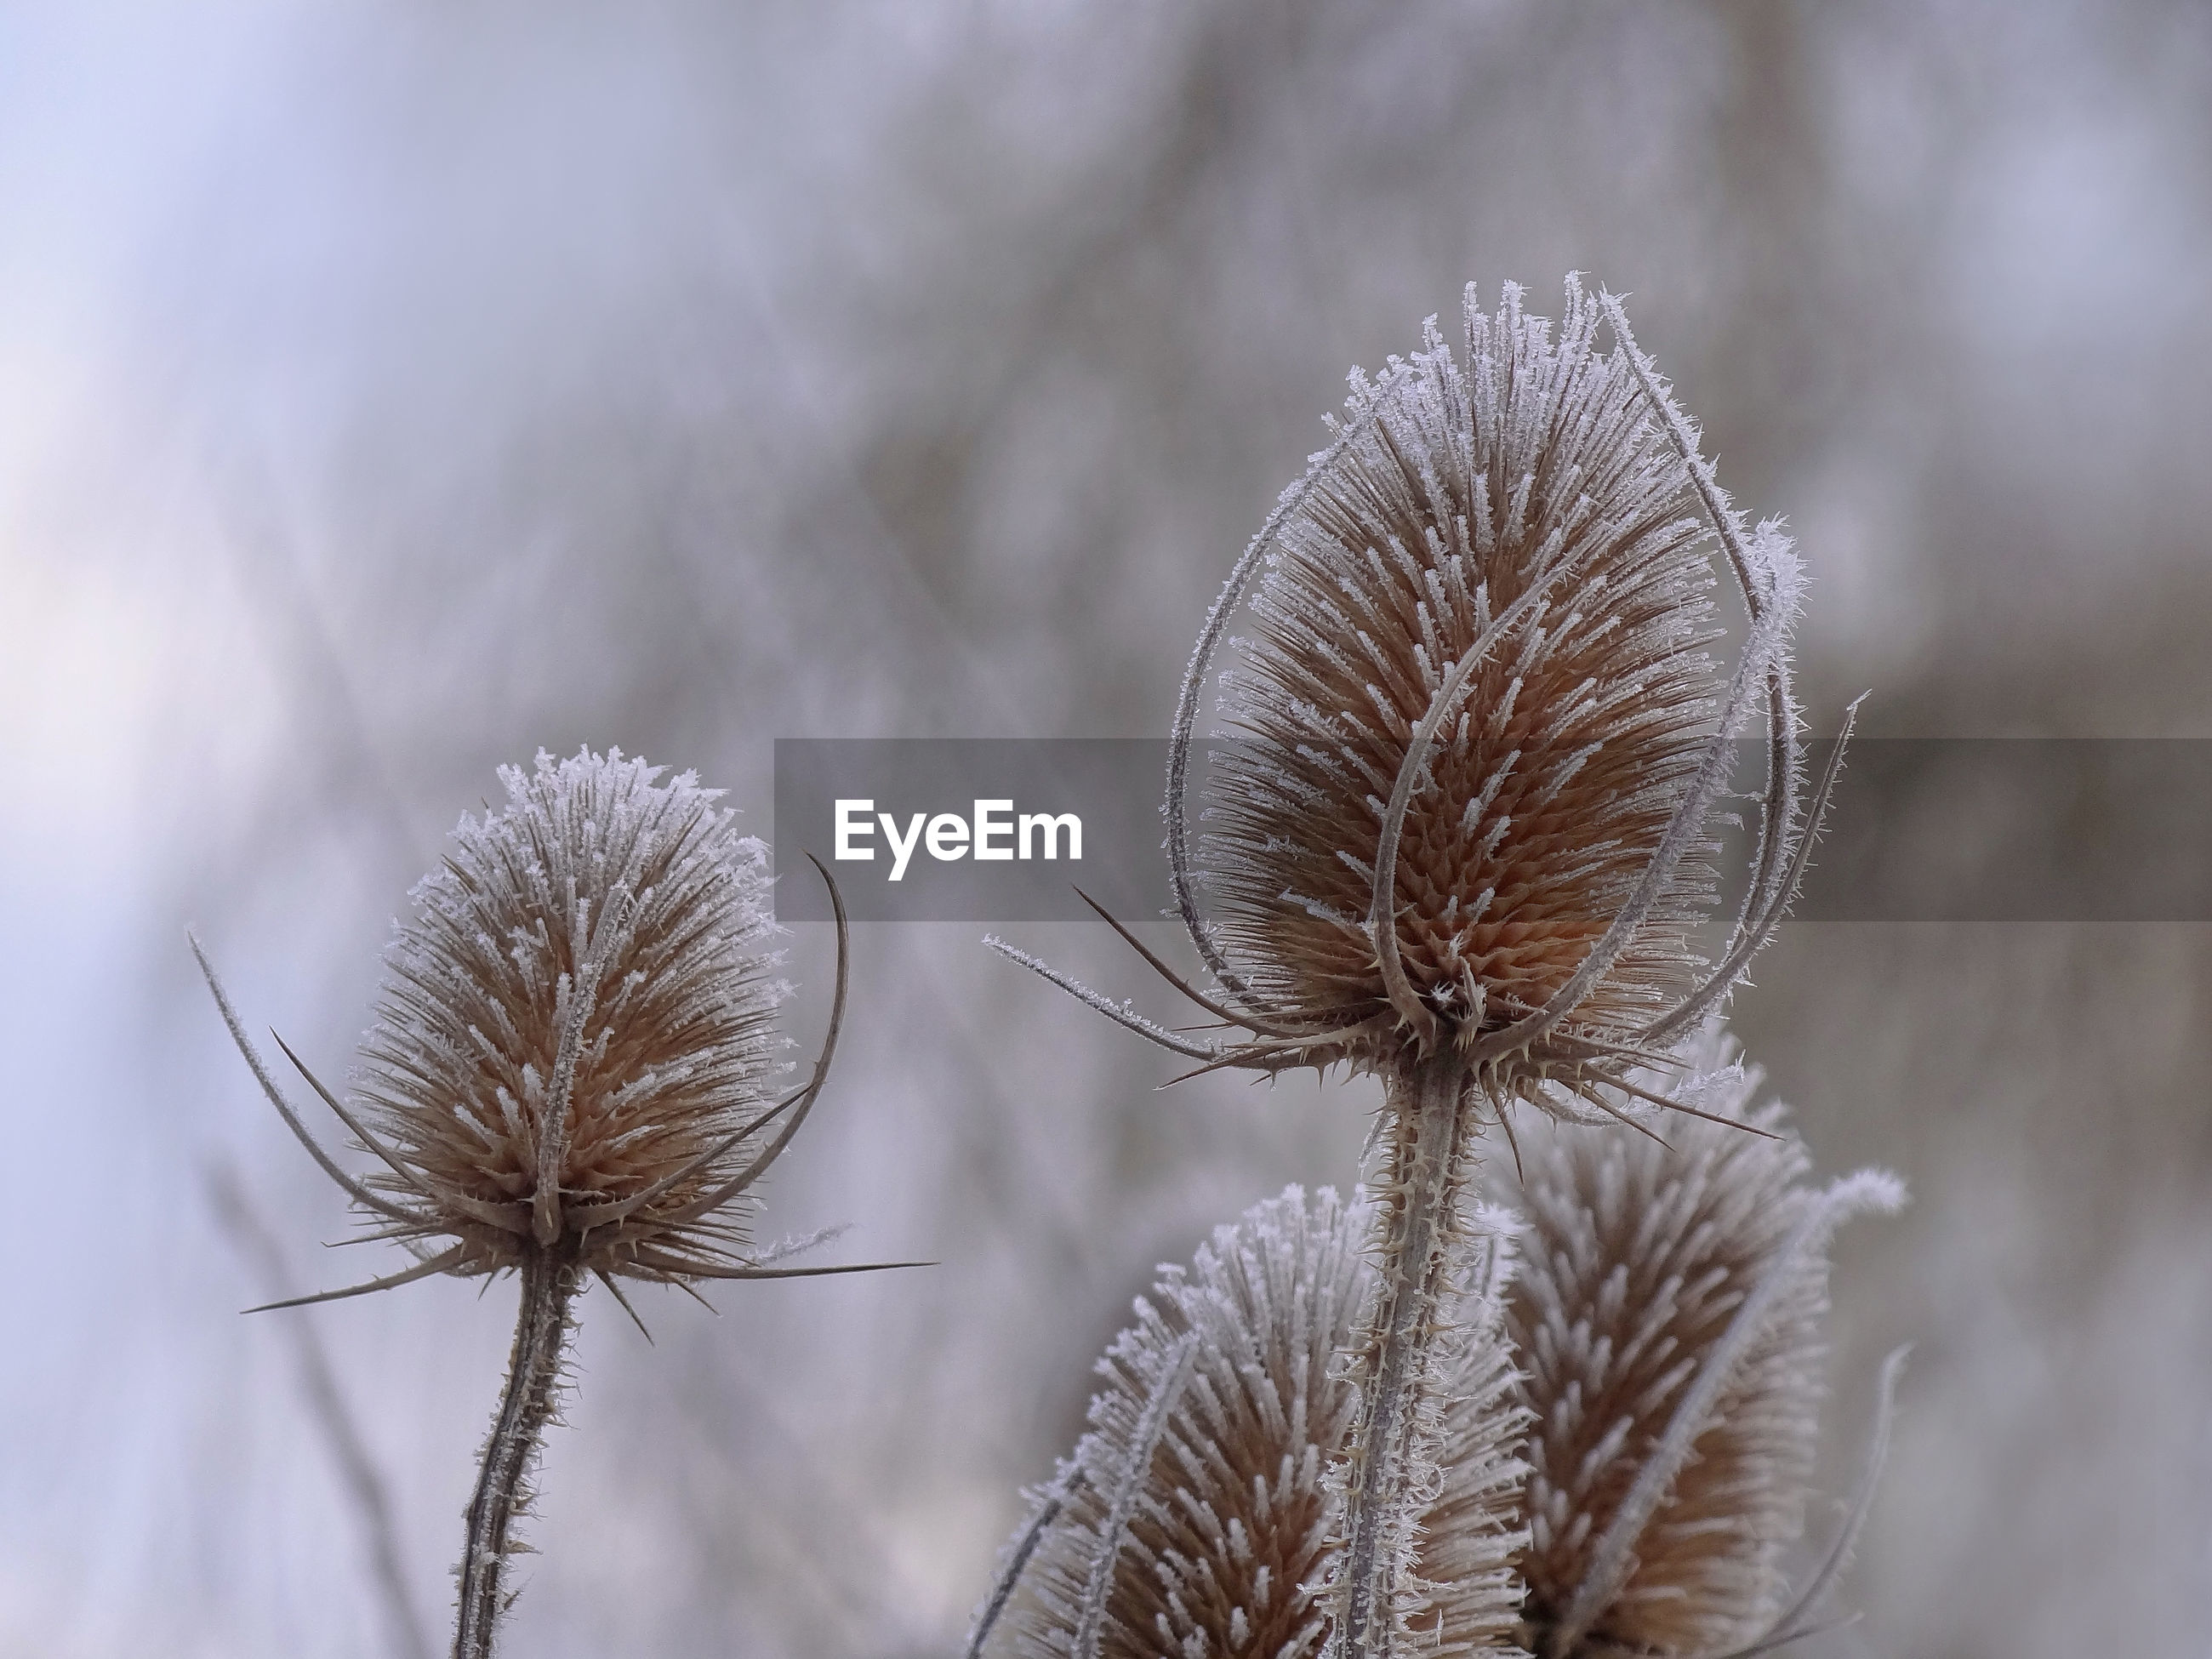 CLOSE-UP OF DRIED PLANT AGAINST SNOW COVERED PLANTS